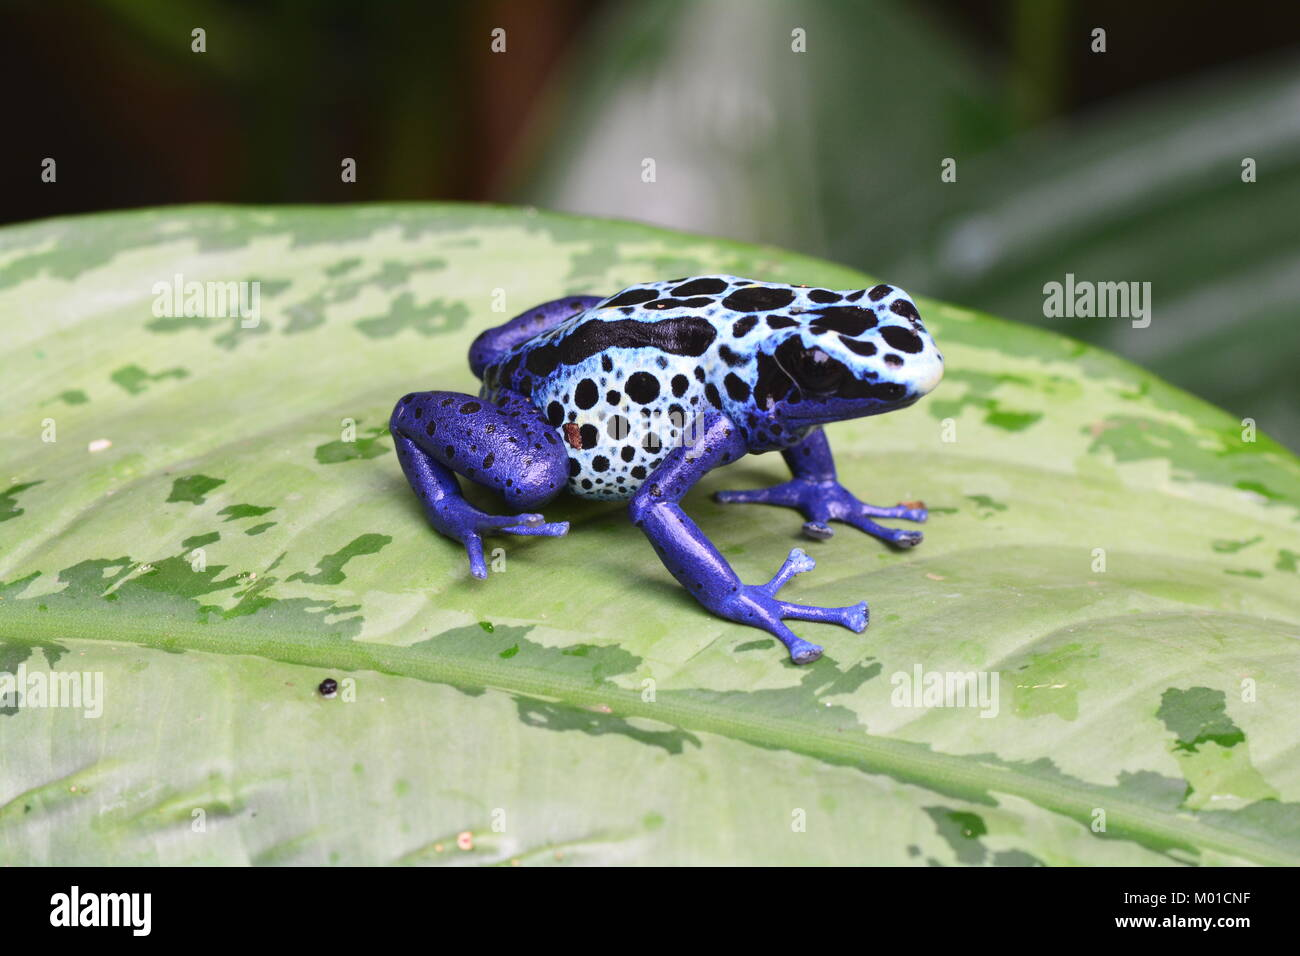 A pretty cobalt blue colored poison dart frog sits on a plant leaf in the gardens. - Stock Image